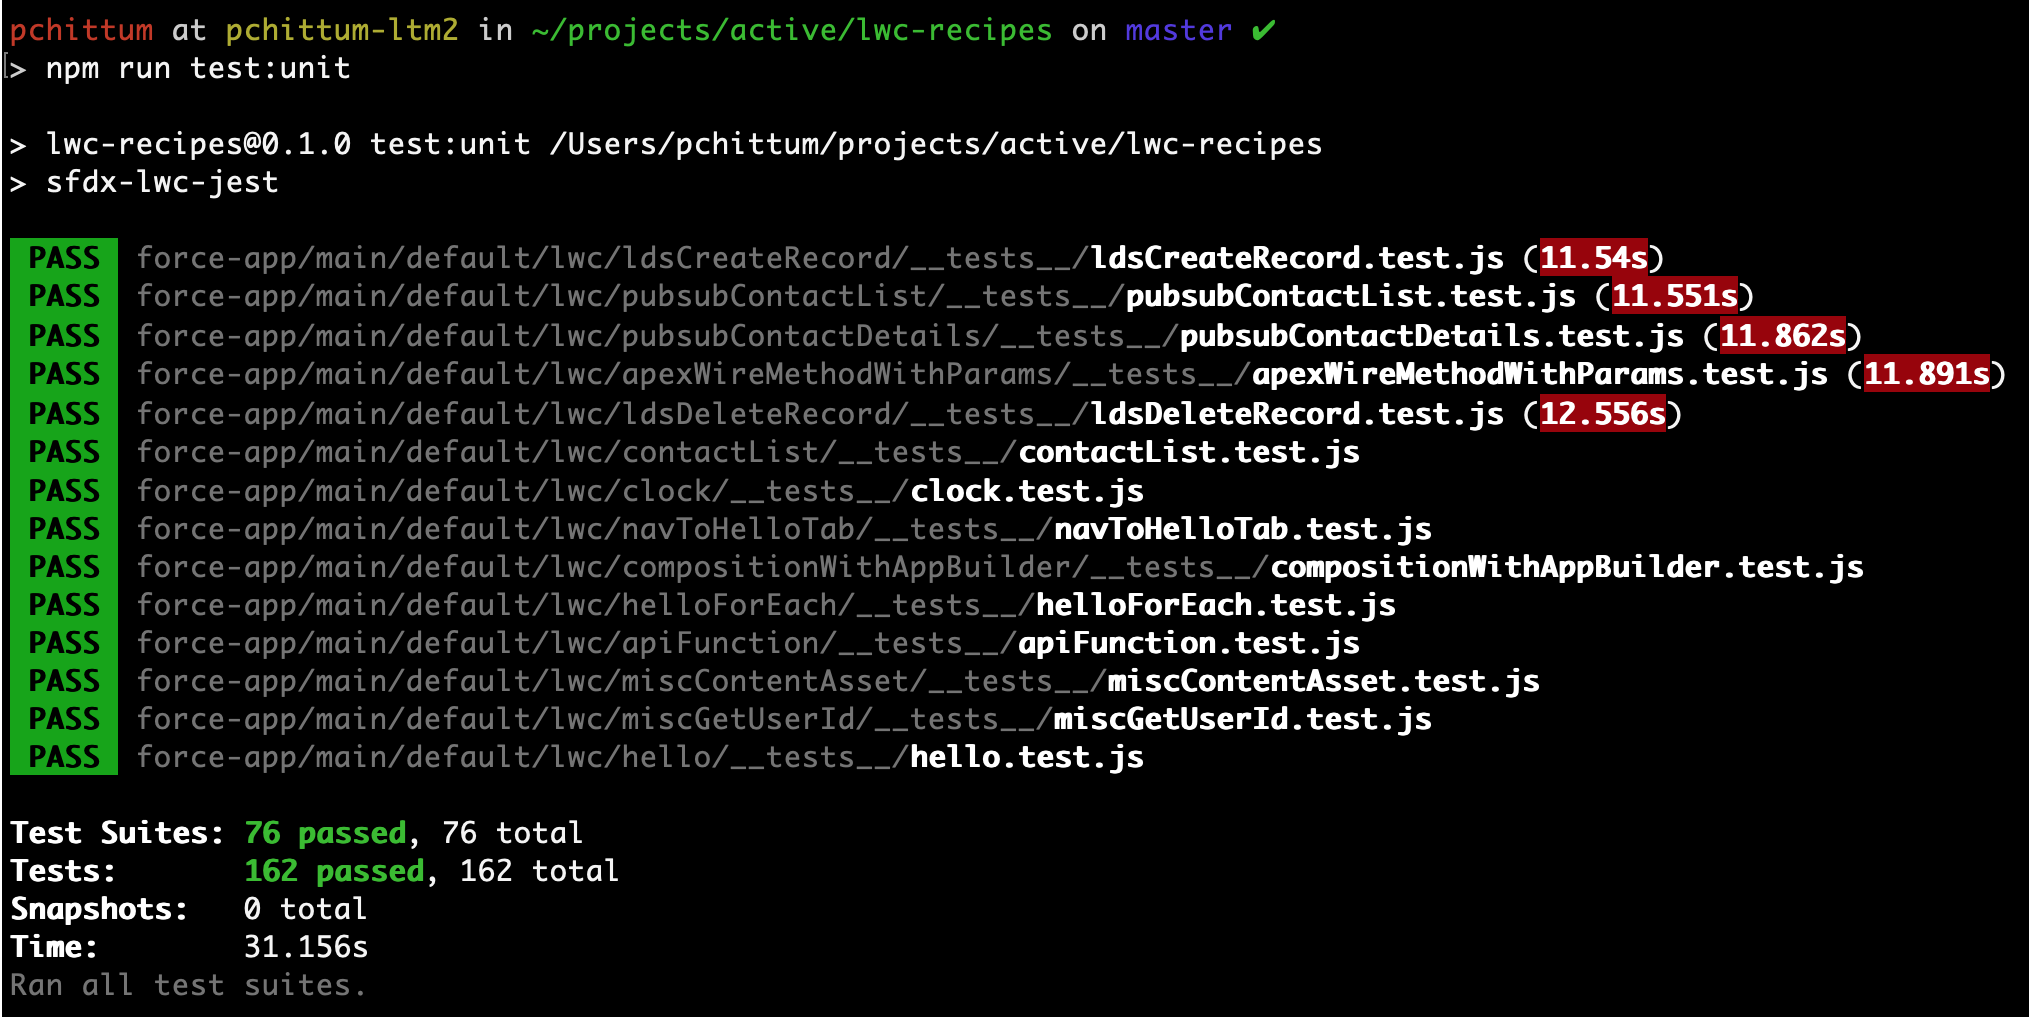 Running unit tests with npm run test:unit.